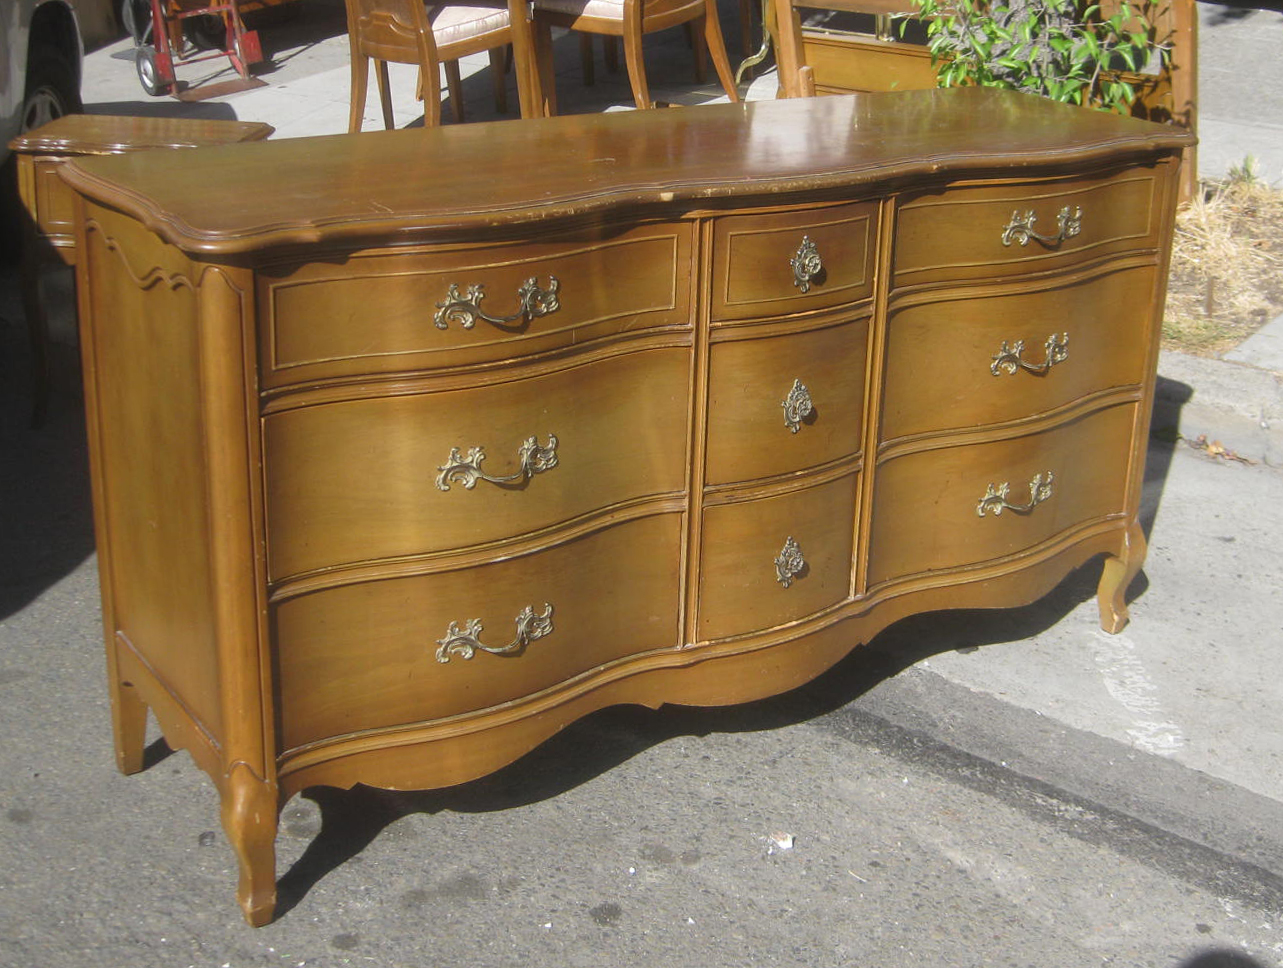 Uhuru furniture collectibles sold french provincial for Furniture in french